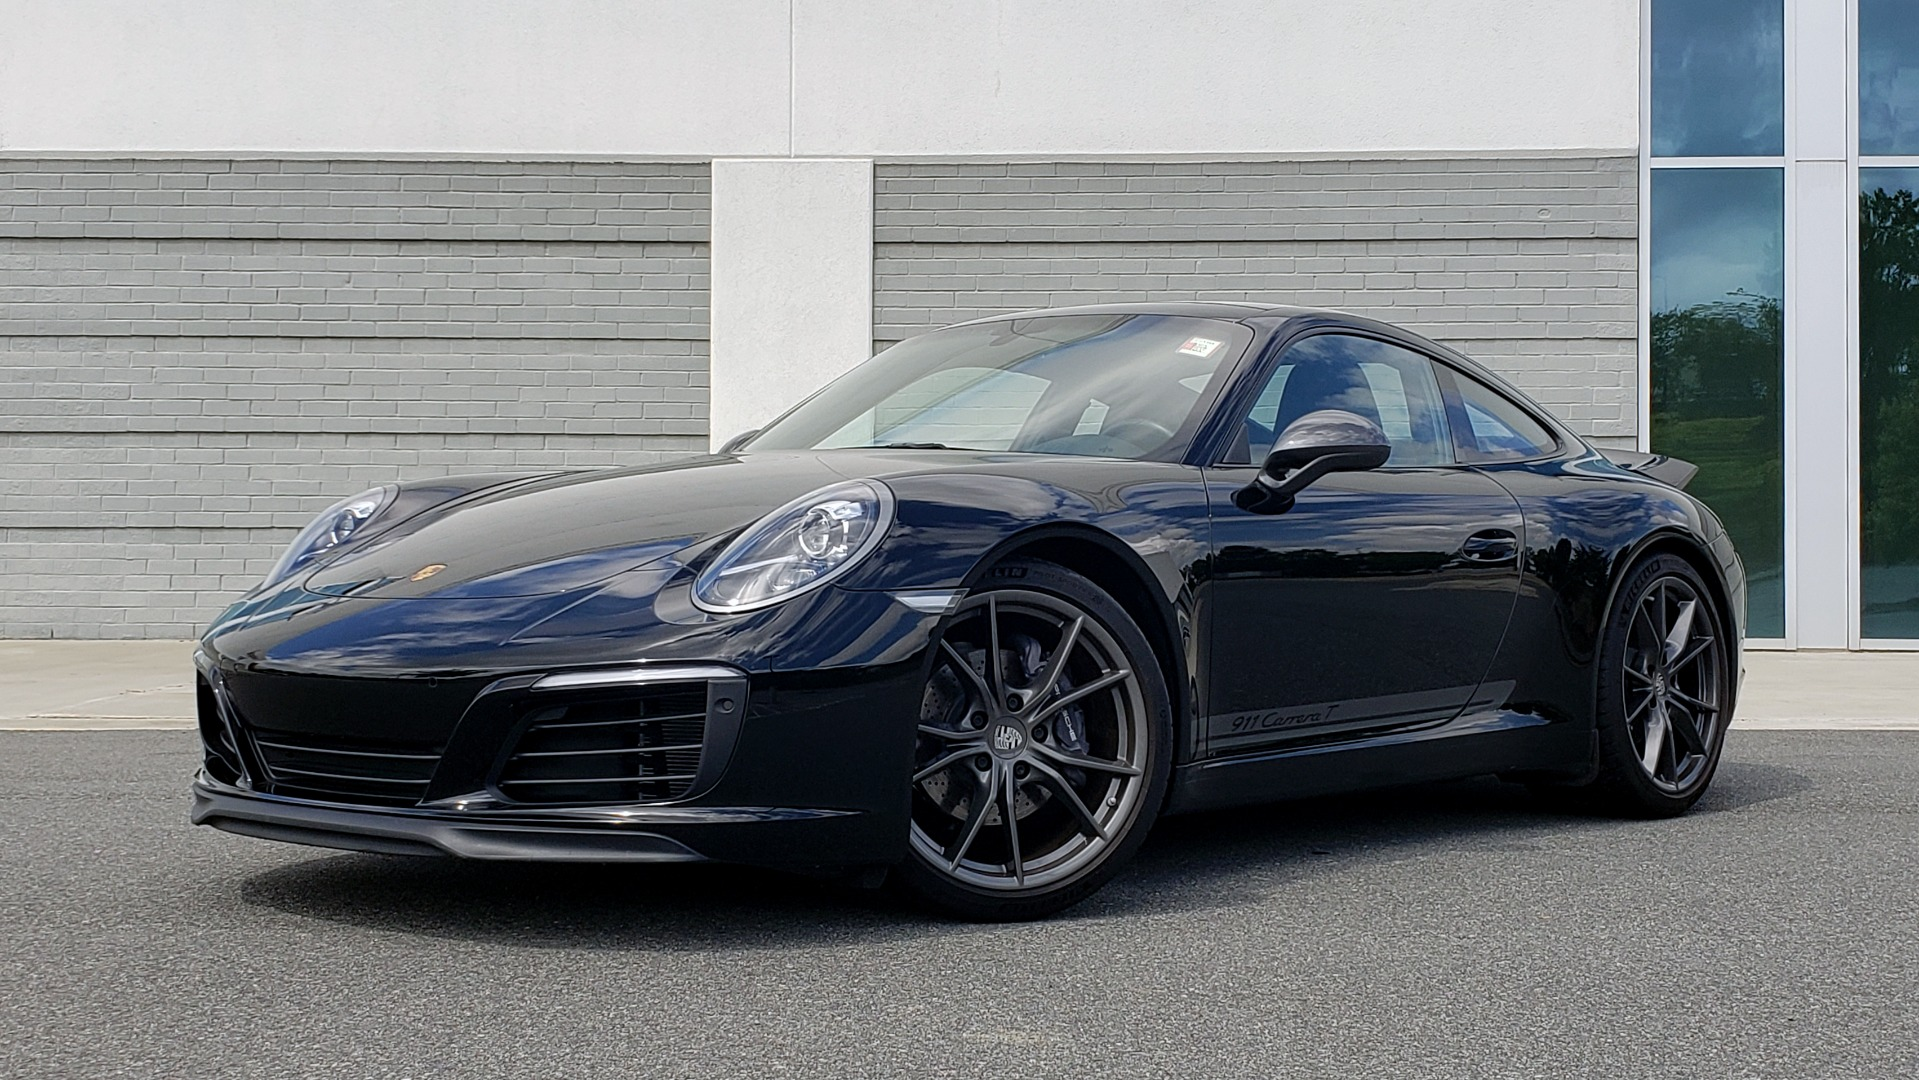 Used 2019 Porsche 911 CARRERA T / 3.0L H6 / MANUAL / PREMIUM / NAV / BOSE / SUNROOF / REARVIEW for sale $117,000 at Formula Imports in Charlotte NC 28227 1